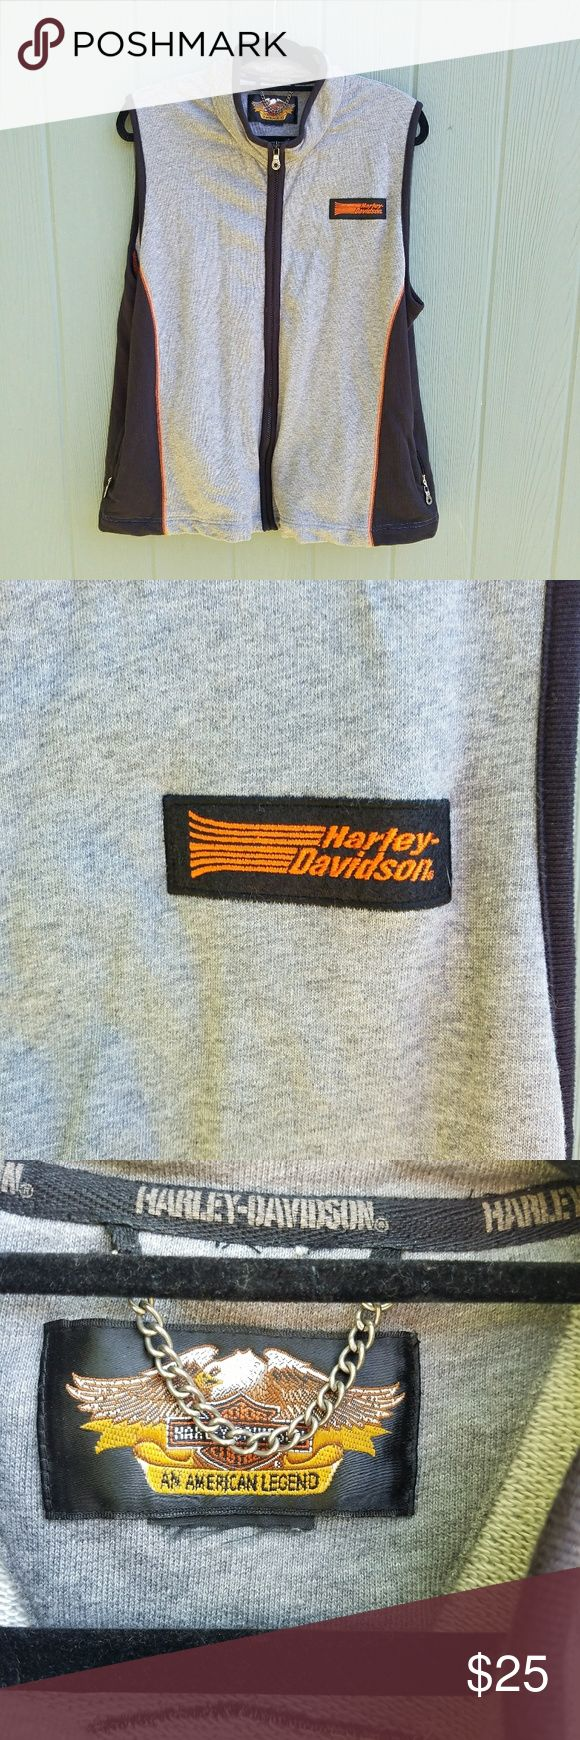 Harley Davidson Full Zip Vest Size Large.  Great shape no stains rips or snags.  Jersey material. Harley-Davidson Jackets & Coats Vests